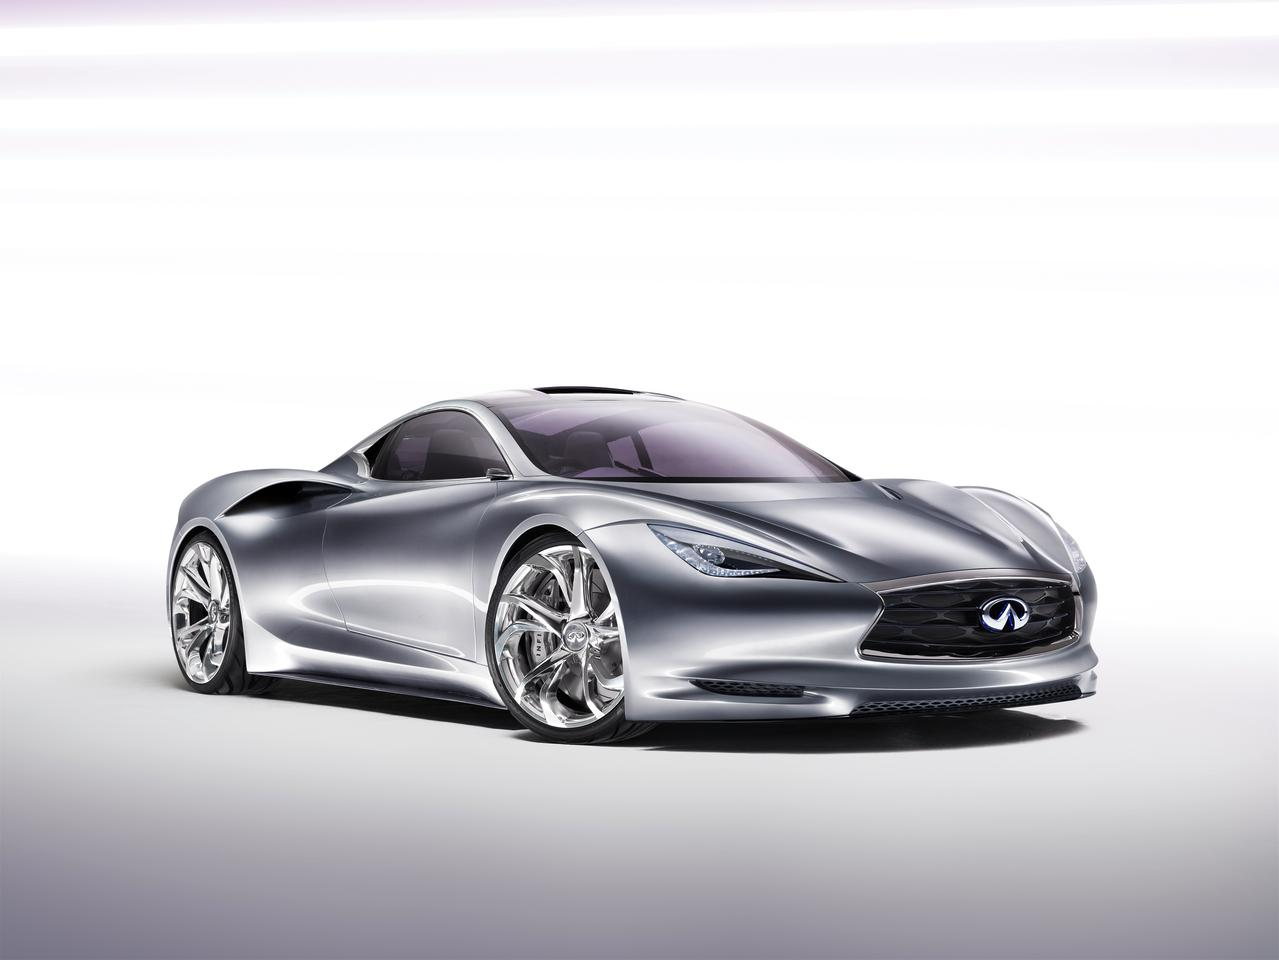 Infiniti first debuted the Emerg-E concept in Geneva this past winter